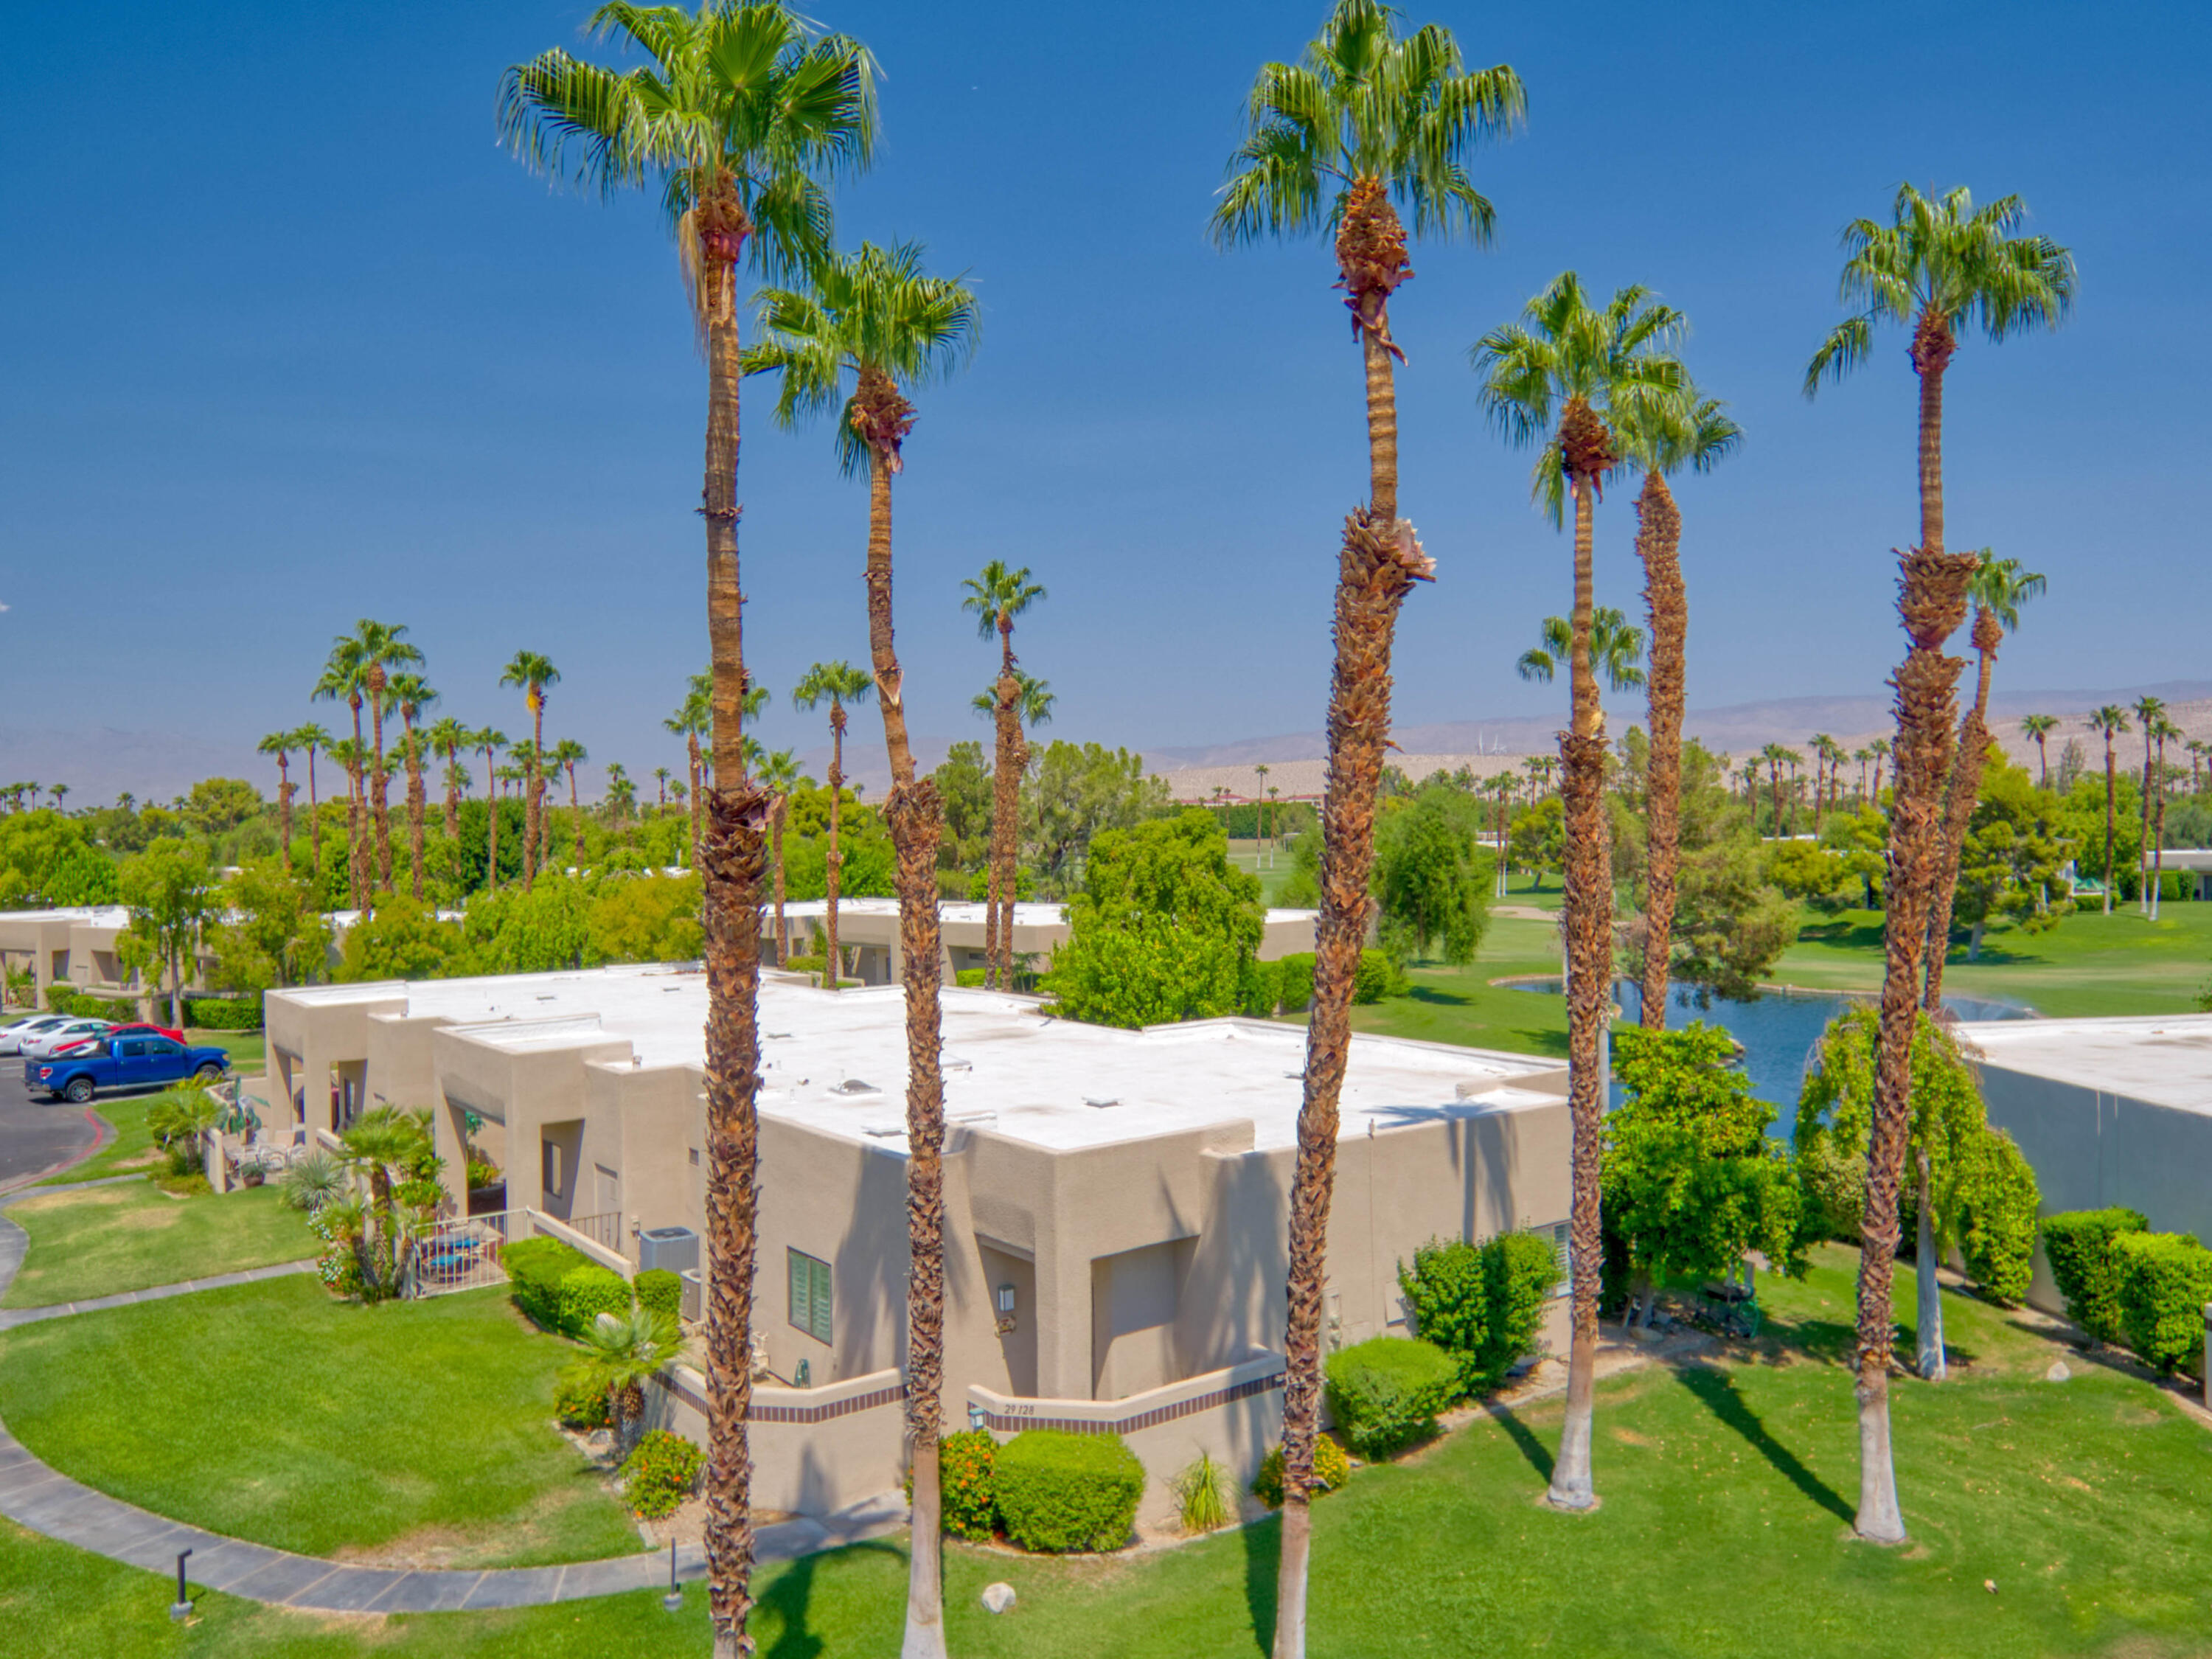 ENJOY IT ALL! Fantastic opportunity in terms of smart design, privacy, and WHAT A VIEW! Beloved Desert Princess Country Club is the magnificent backdrop. This corner condo brings light pouring in from three sides. Covered patio runs the length of the home on the lake side. Views of the Chocolate Mountains and neighboring Little San Bernardino Mountains! You'll LOVE the fountain and green space doubling as your backyard. Glass sliders bring the outdoors into the primary living areas and master bedroom. Kitchen opens in a way which makes for easy-breezy entertaining! Guest bedroom is currently enjoyed as a home office. Tile flooring and plantation shutters are timeless. Fireplace is a pleasant surprise in terms of scale and positioning. This home's magnificent double-door entry is fabulous. Laundry closet located in the hallway. This modern community is home to 537 condos and 675 freestanding villas. Be sure and check out Desert Princess Country Club's 27-hole championship golf course and 35 swimming pools. Bocce ball, pickleball, or tennis anyone? All of it, just minutes from the heart of downtown Palm Springs.